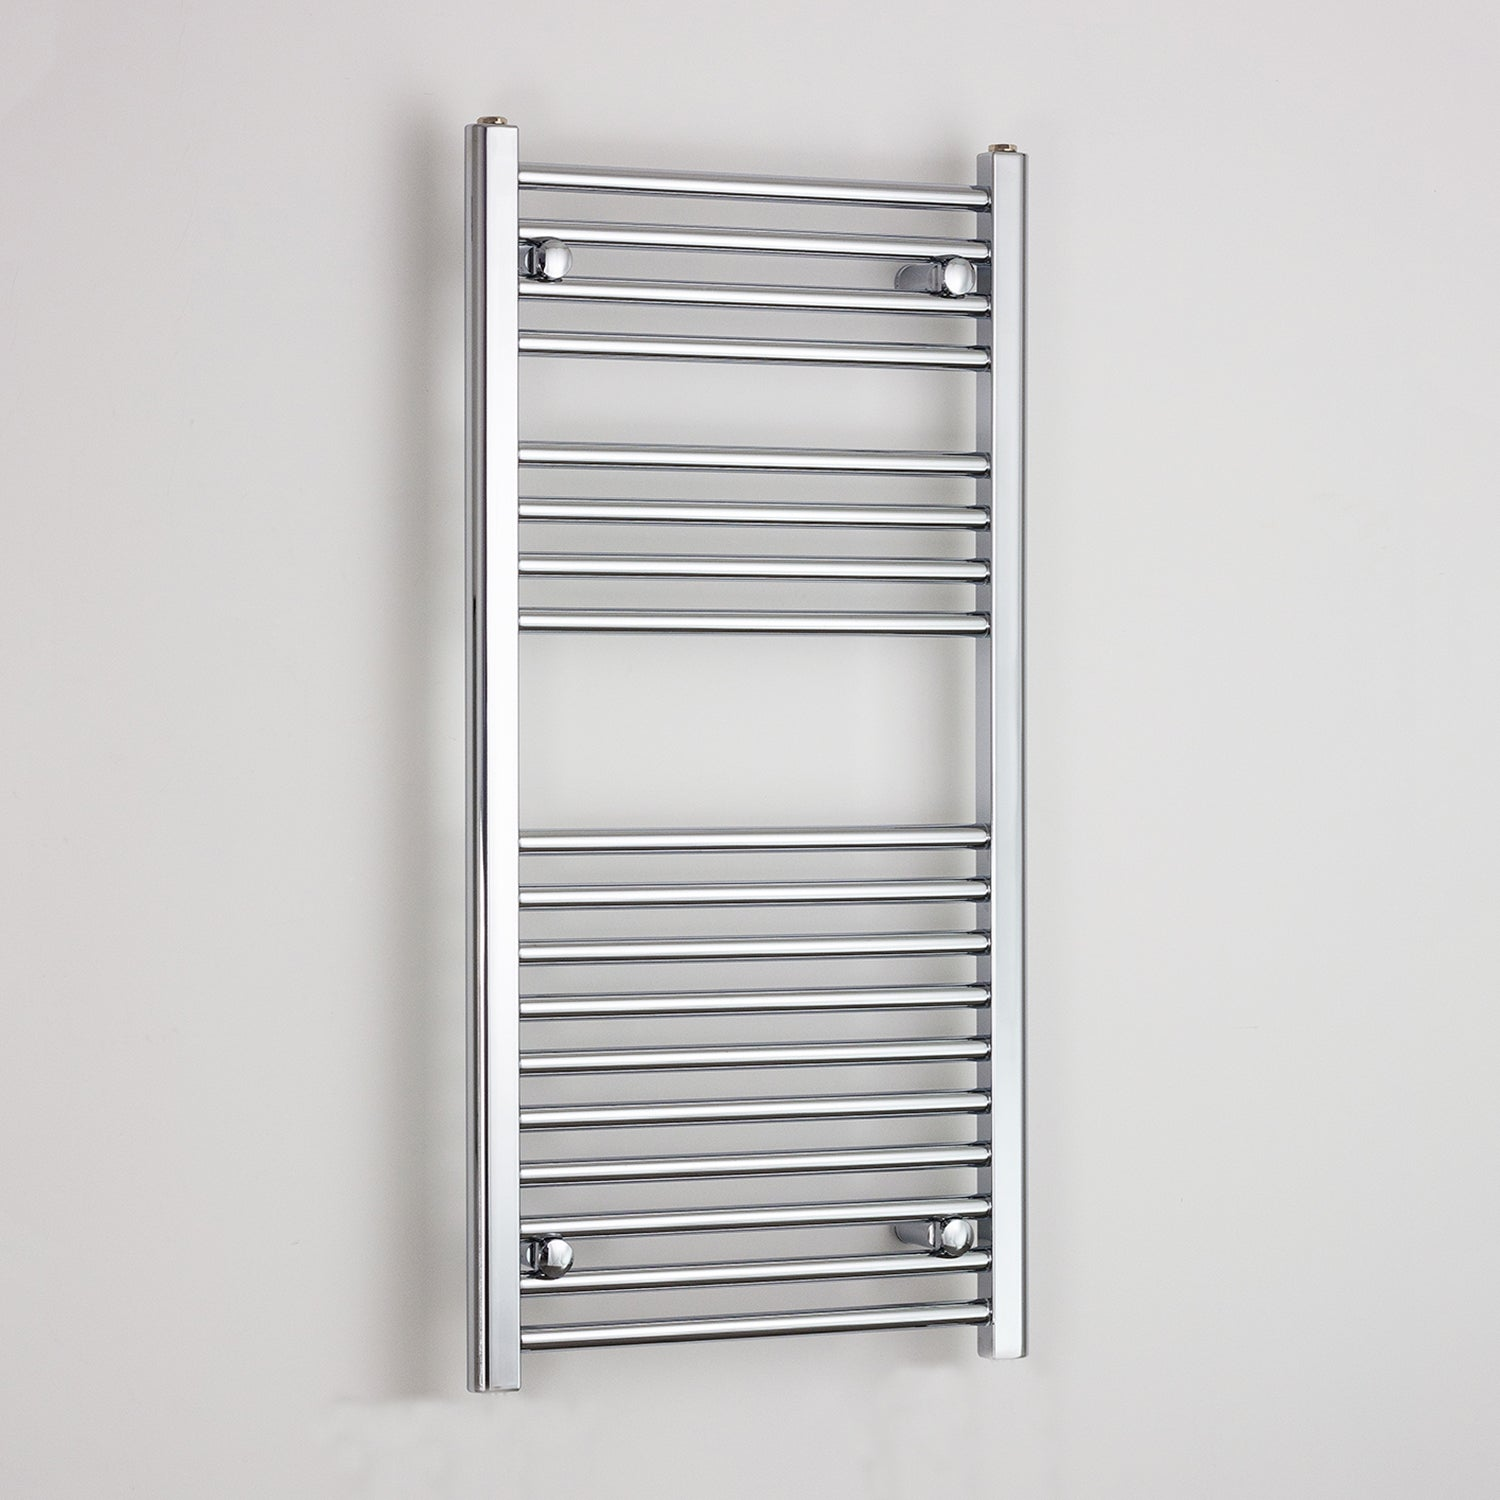 400mm Wide 1000mm High Curved Chrome Heated Towel Rail Radiator HTR,Towel Rail Only